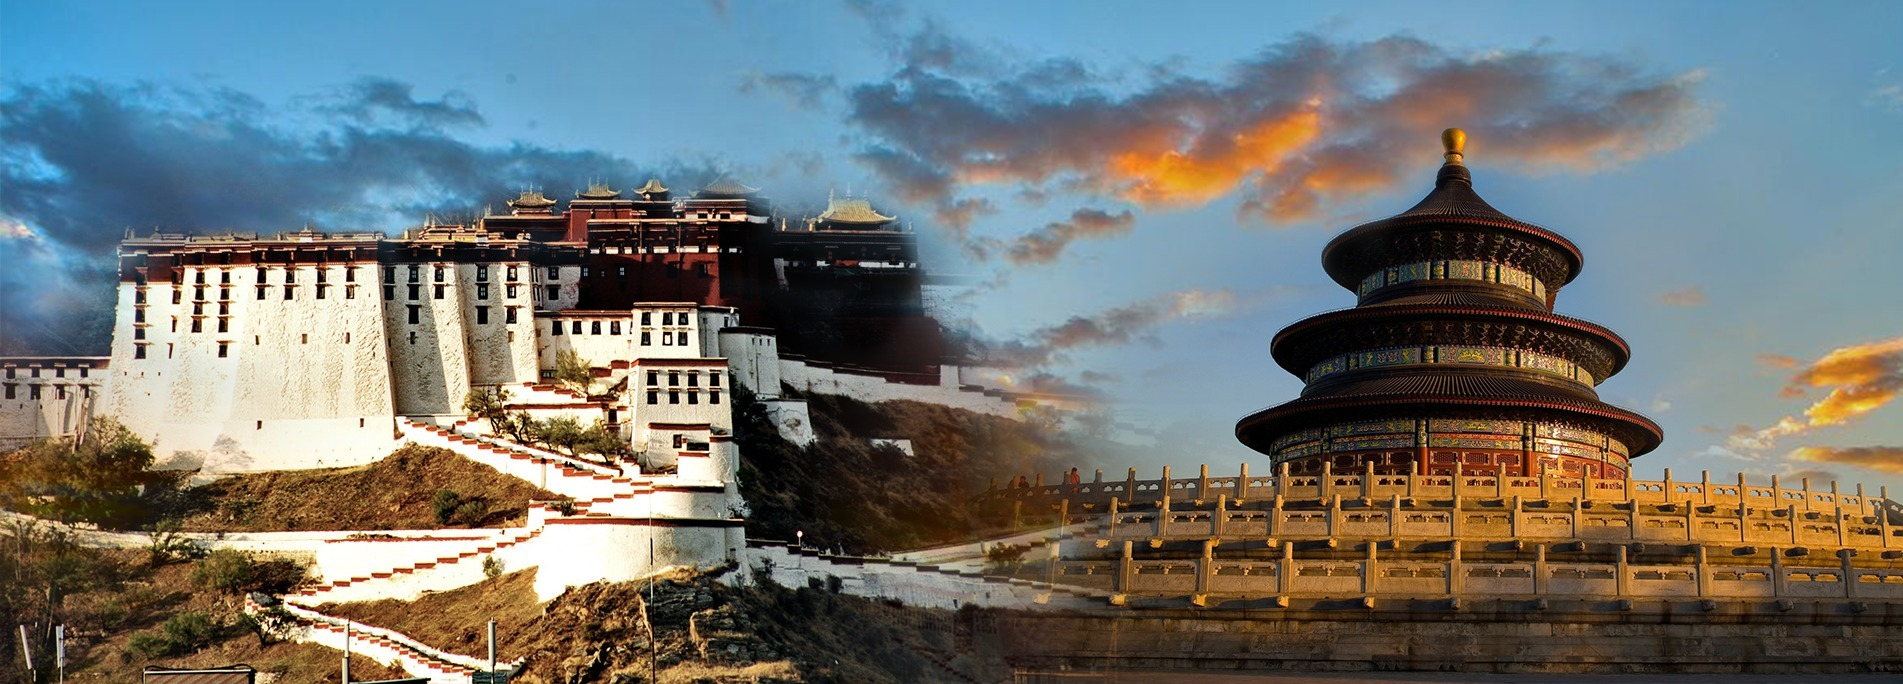 You will visit the landmarks in both Beijing and Tibet via Beijing and Tibet tour packages.